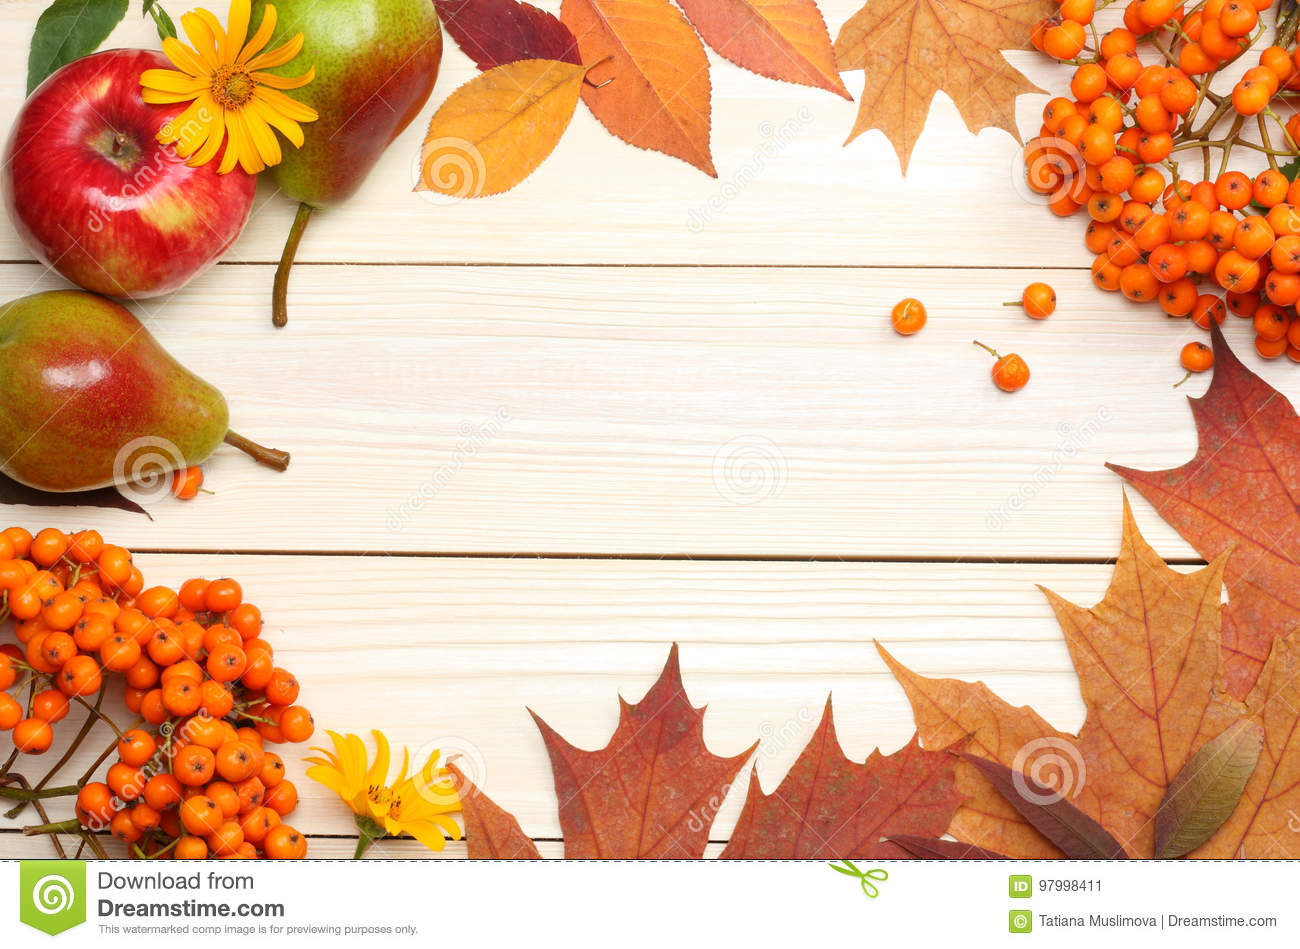 Autumn background with colored leaves on wooden board. top view